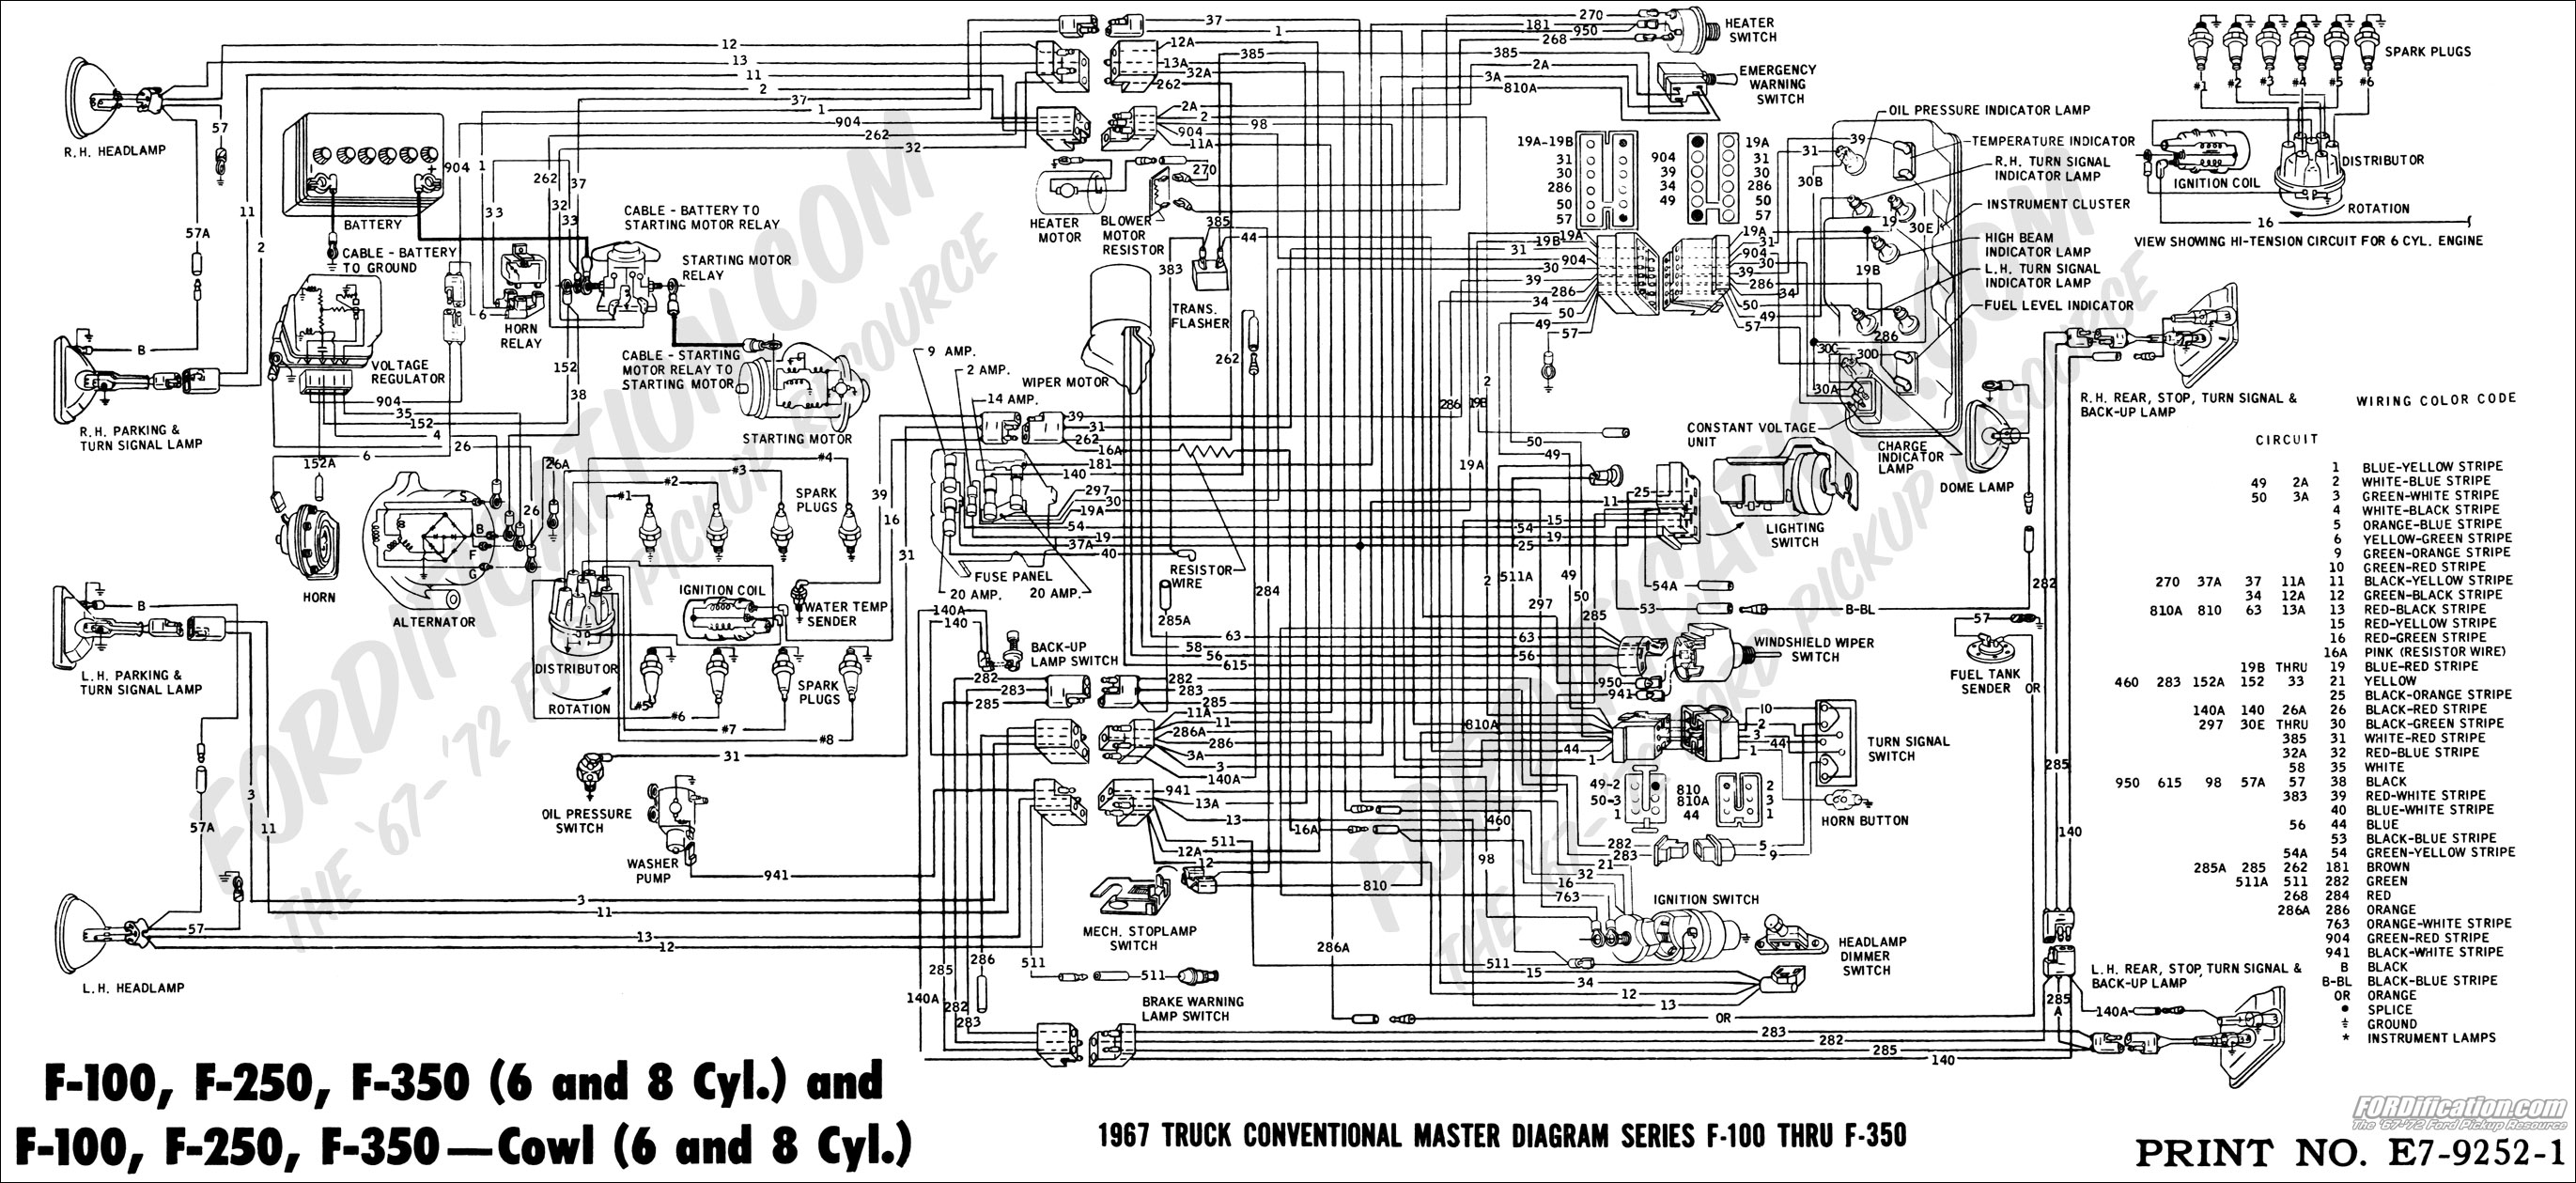 67masterdiagram 1985 ford ranger wiring diagram ford ranger fuel system diagram 1999 ford ranger ignition switch wiring diagram at alyssarenee.co